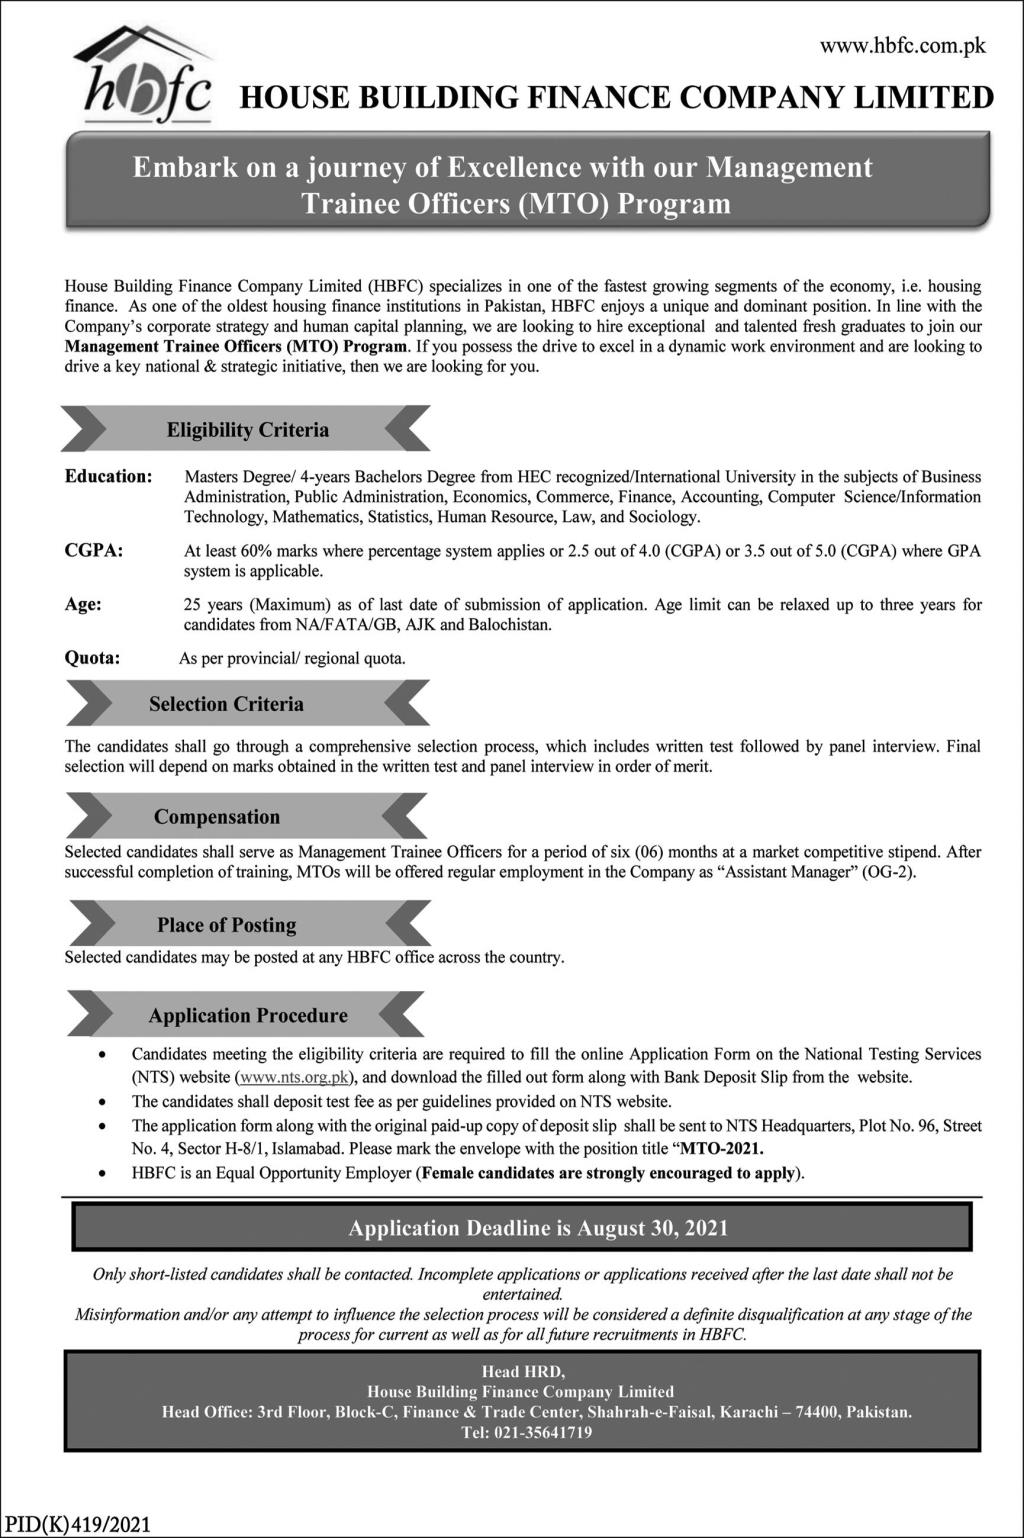 House Building Finance Company Limited HBFC Karachi Jobs 2021 For Management Trainee Officers MTO Program